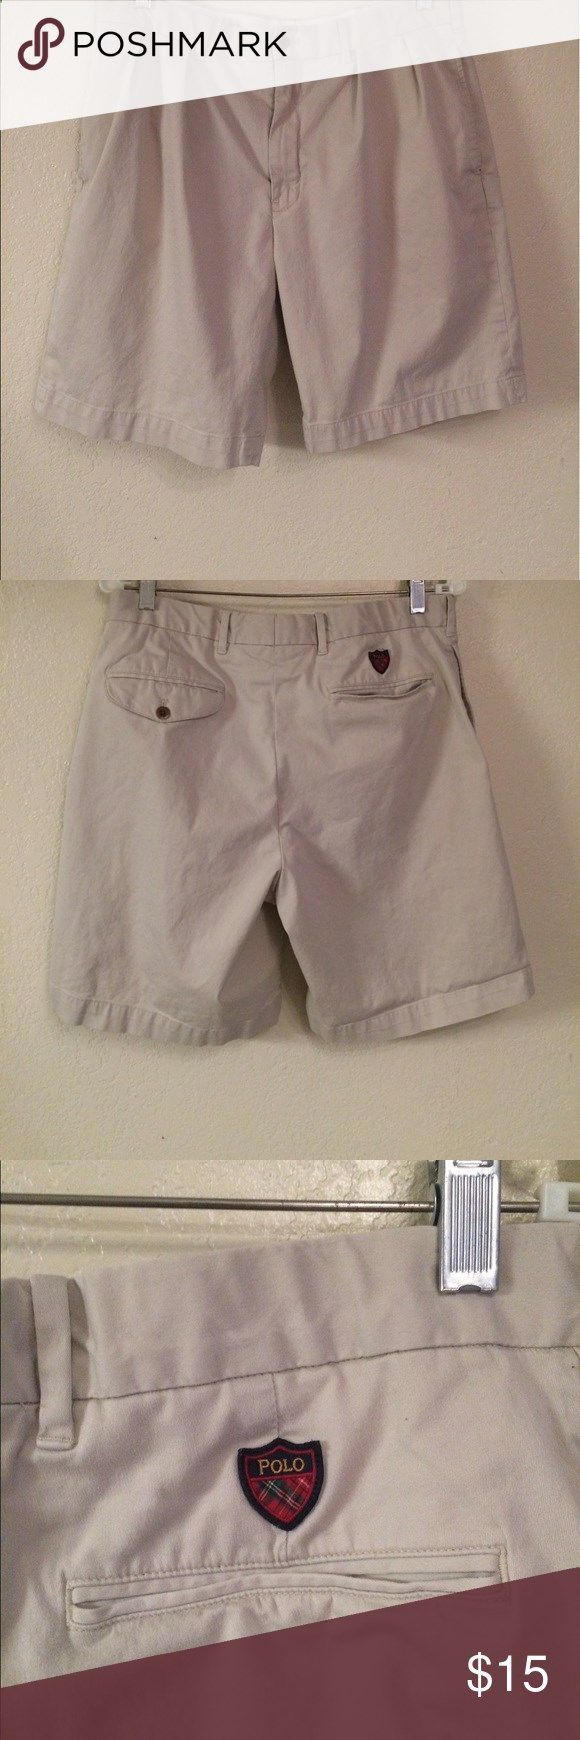 Ralph Lauren Polo Golf Shorts, khaki, Sz 34 Ralph Lauren Polo Golf Shorts, khaki, Sz 34 Polo by Ralph Lauren Shorts